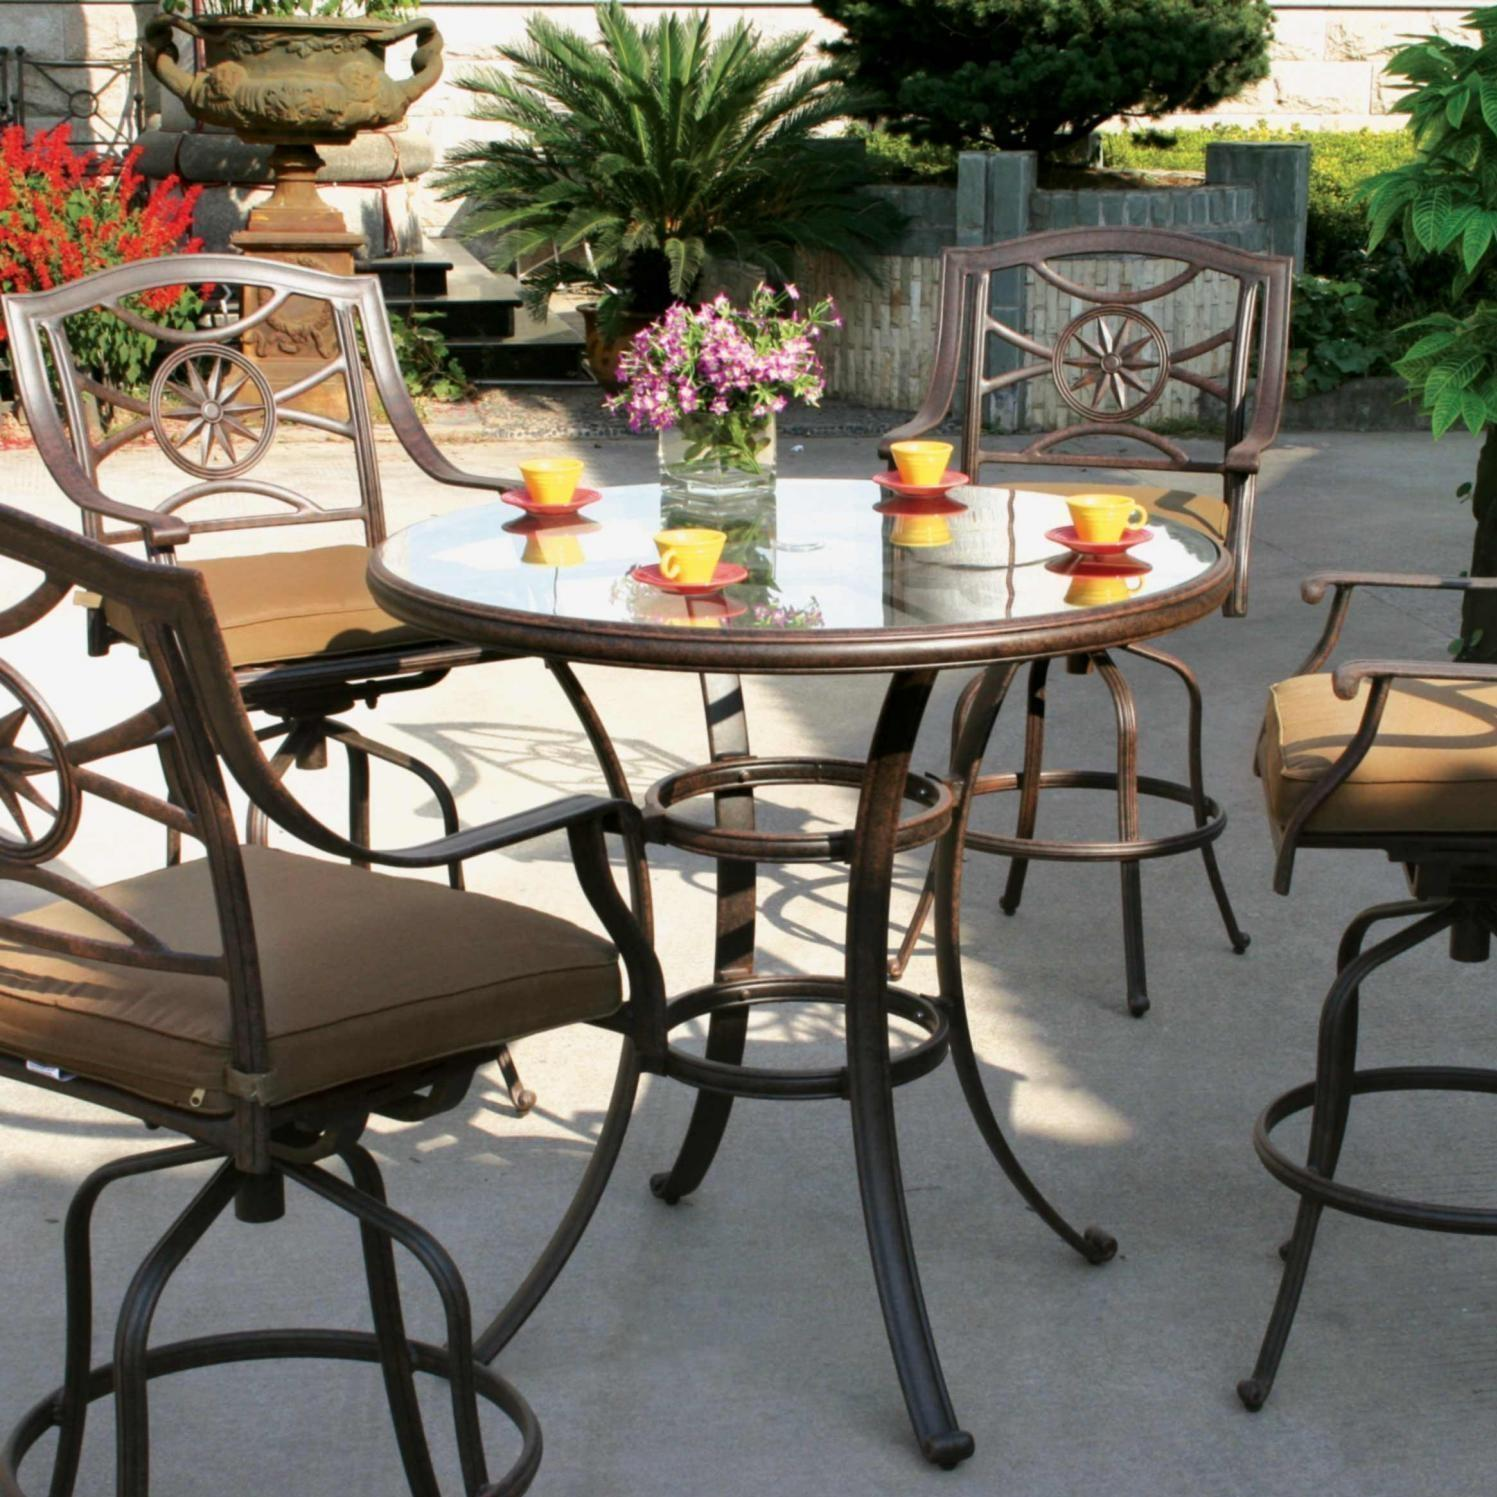 Darlee Ten Star 4-person Cast Aluminum Patio Bar Set With Glass Top Table - Antique Bronze at Sears.com